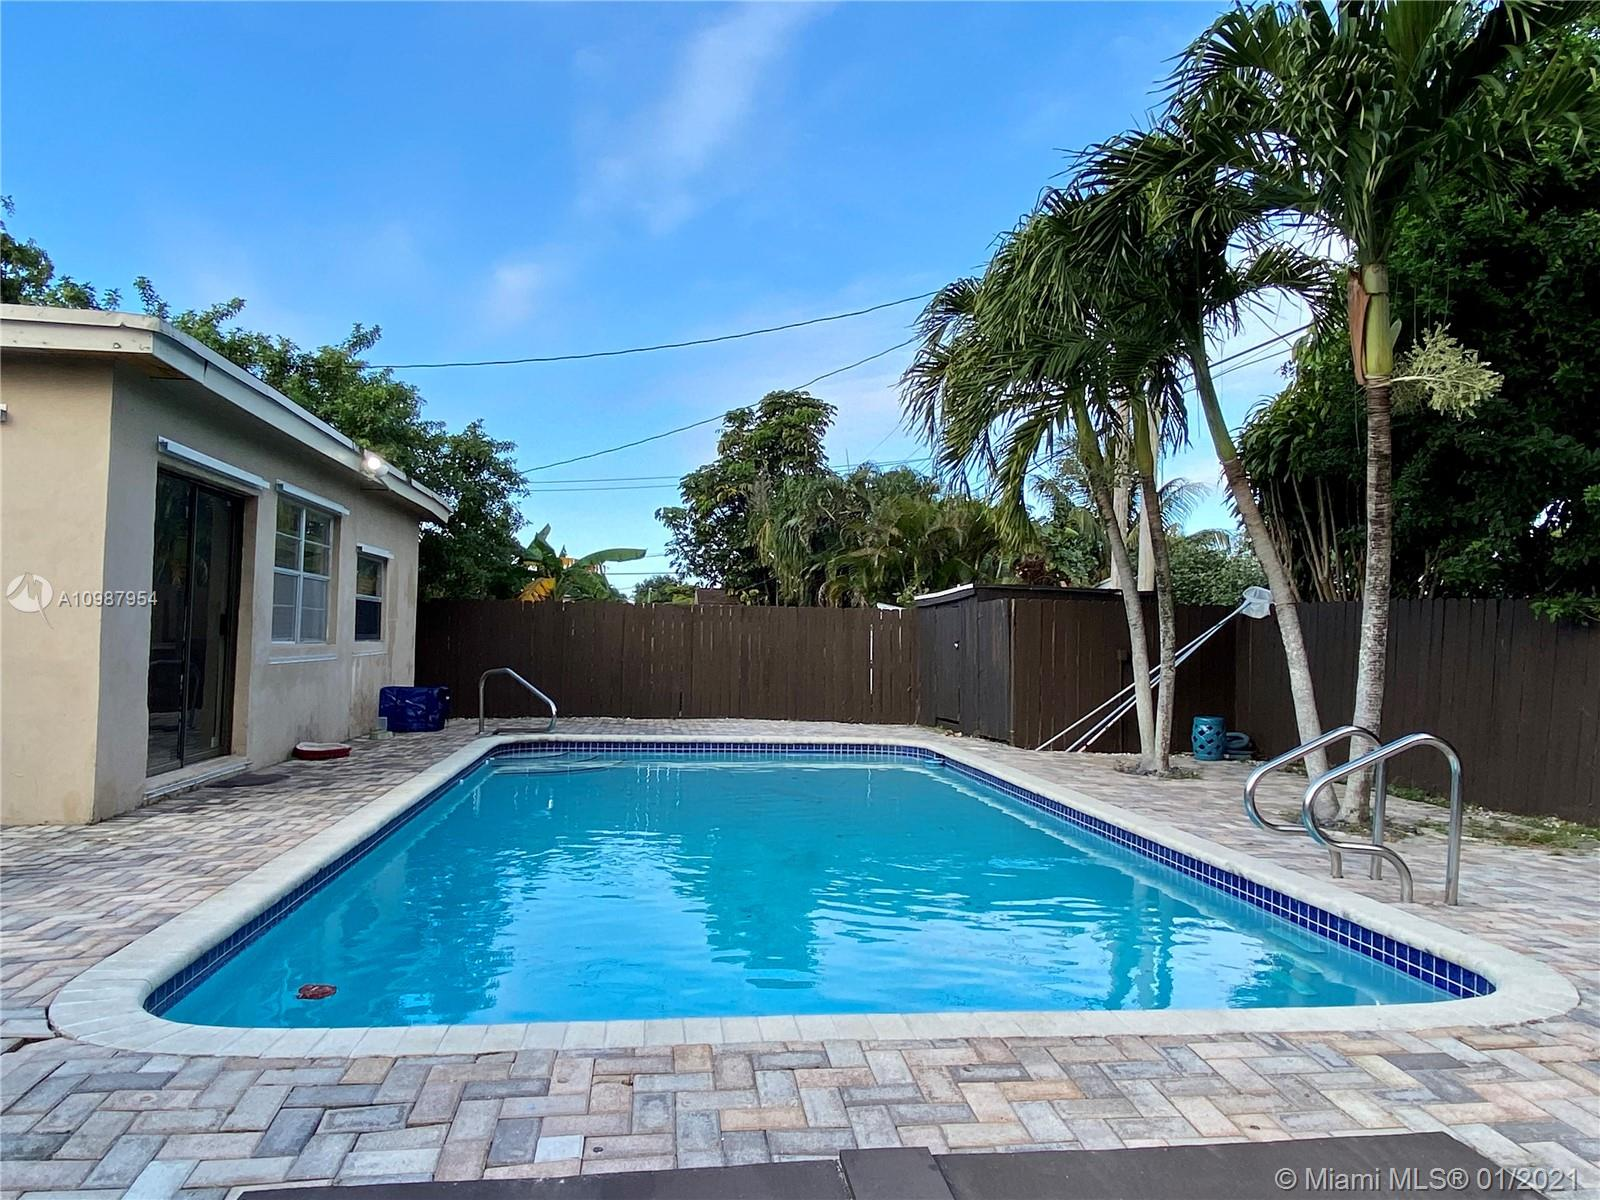 Beautiful pool home , fenced patio with nice pavers and palm trees, 2 sheds, one year old roof,circular driveway, and lot of space for additional parking, updated kitchen and bathrooms, tile  floor in  all areas. 3 bedrooms and 2 bathrooms,  laundry room, tank less water heater, hurricane shutters, Florida room. Quite, nice and safe neighborhood, and free of home owner association dues. Close to the South Broward Community College, schools and the Florida Turnpike.